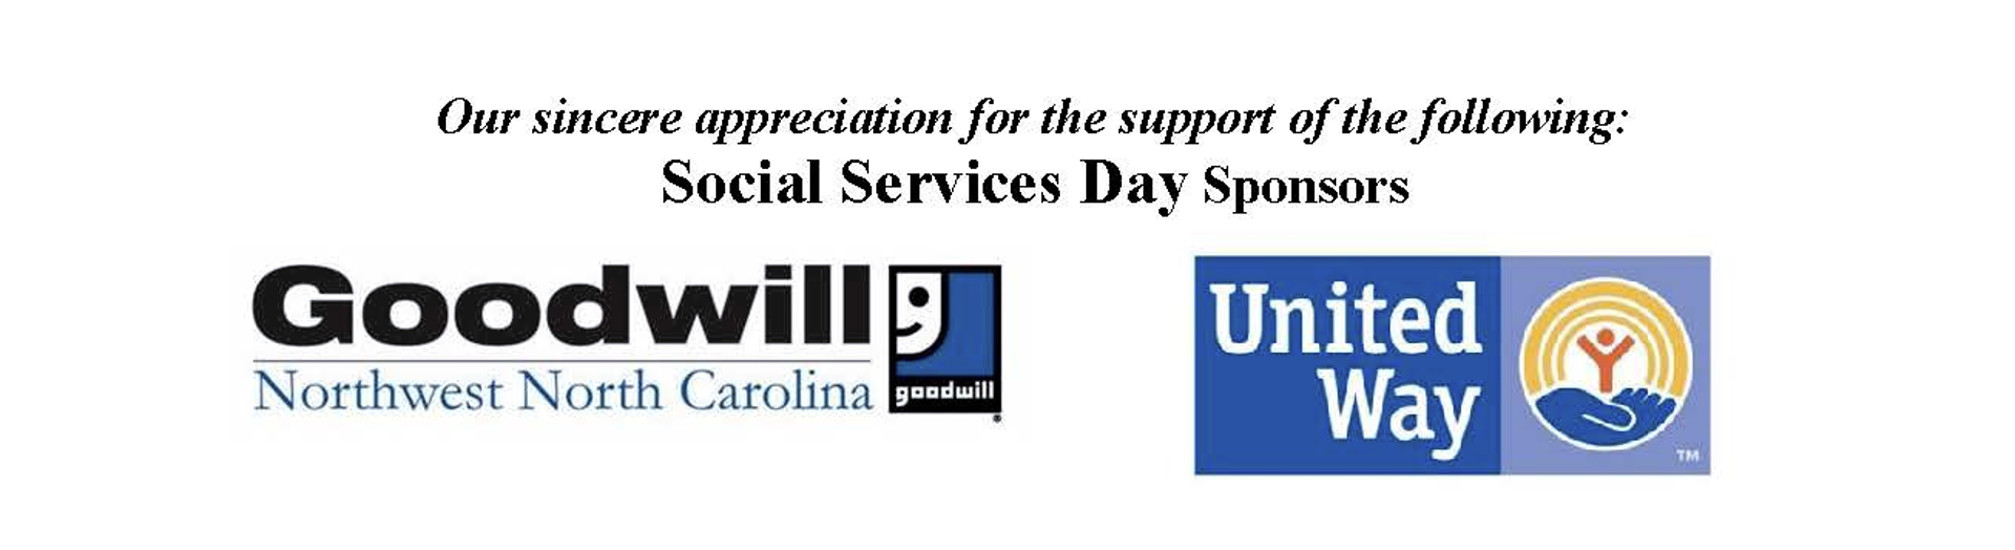 Help us thank our Social Services Day Sponsors